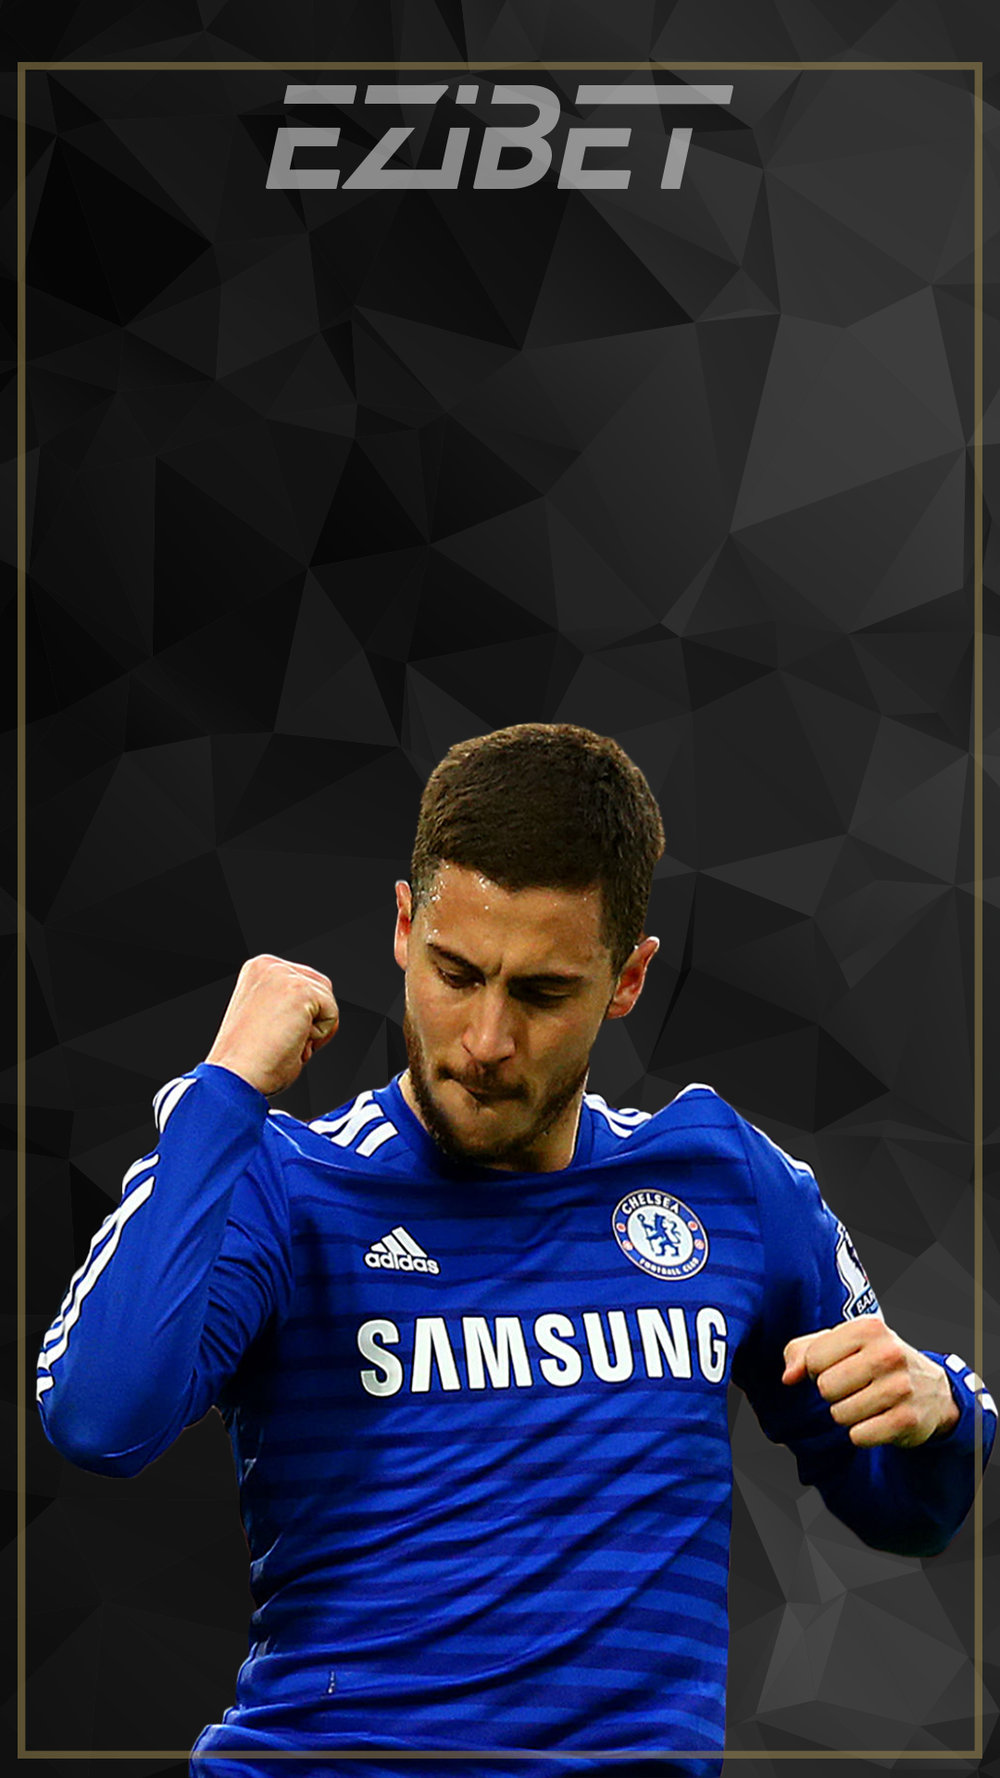 Hazard Mobile Wallpaper.jpg